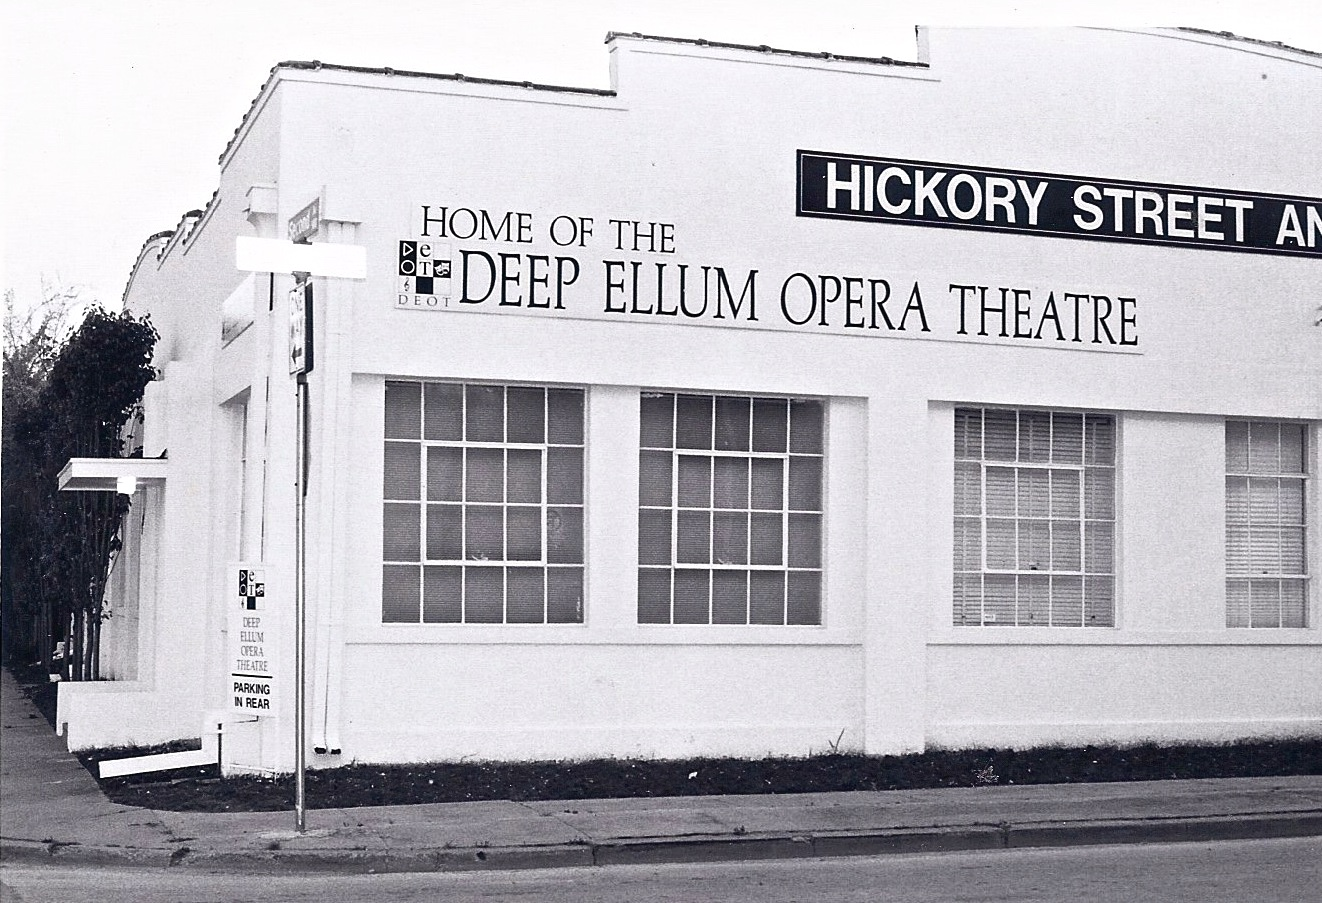 Dallas' Deep Ellum Opera Theatre